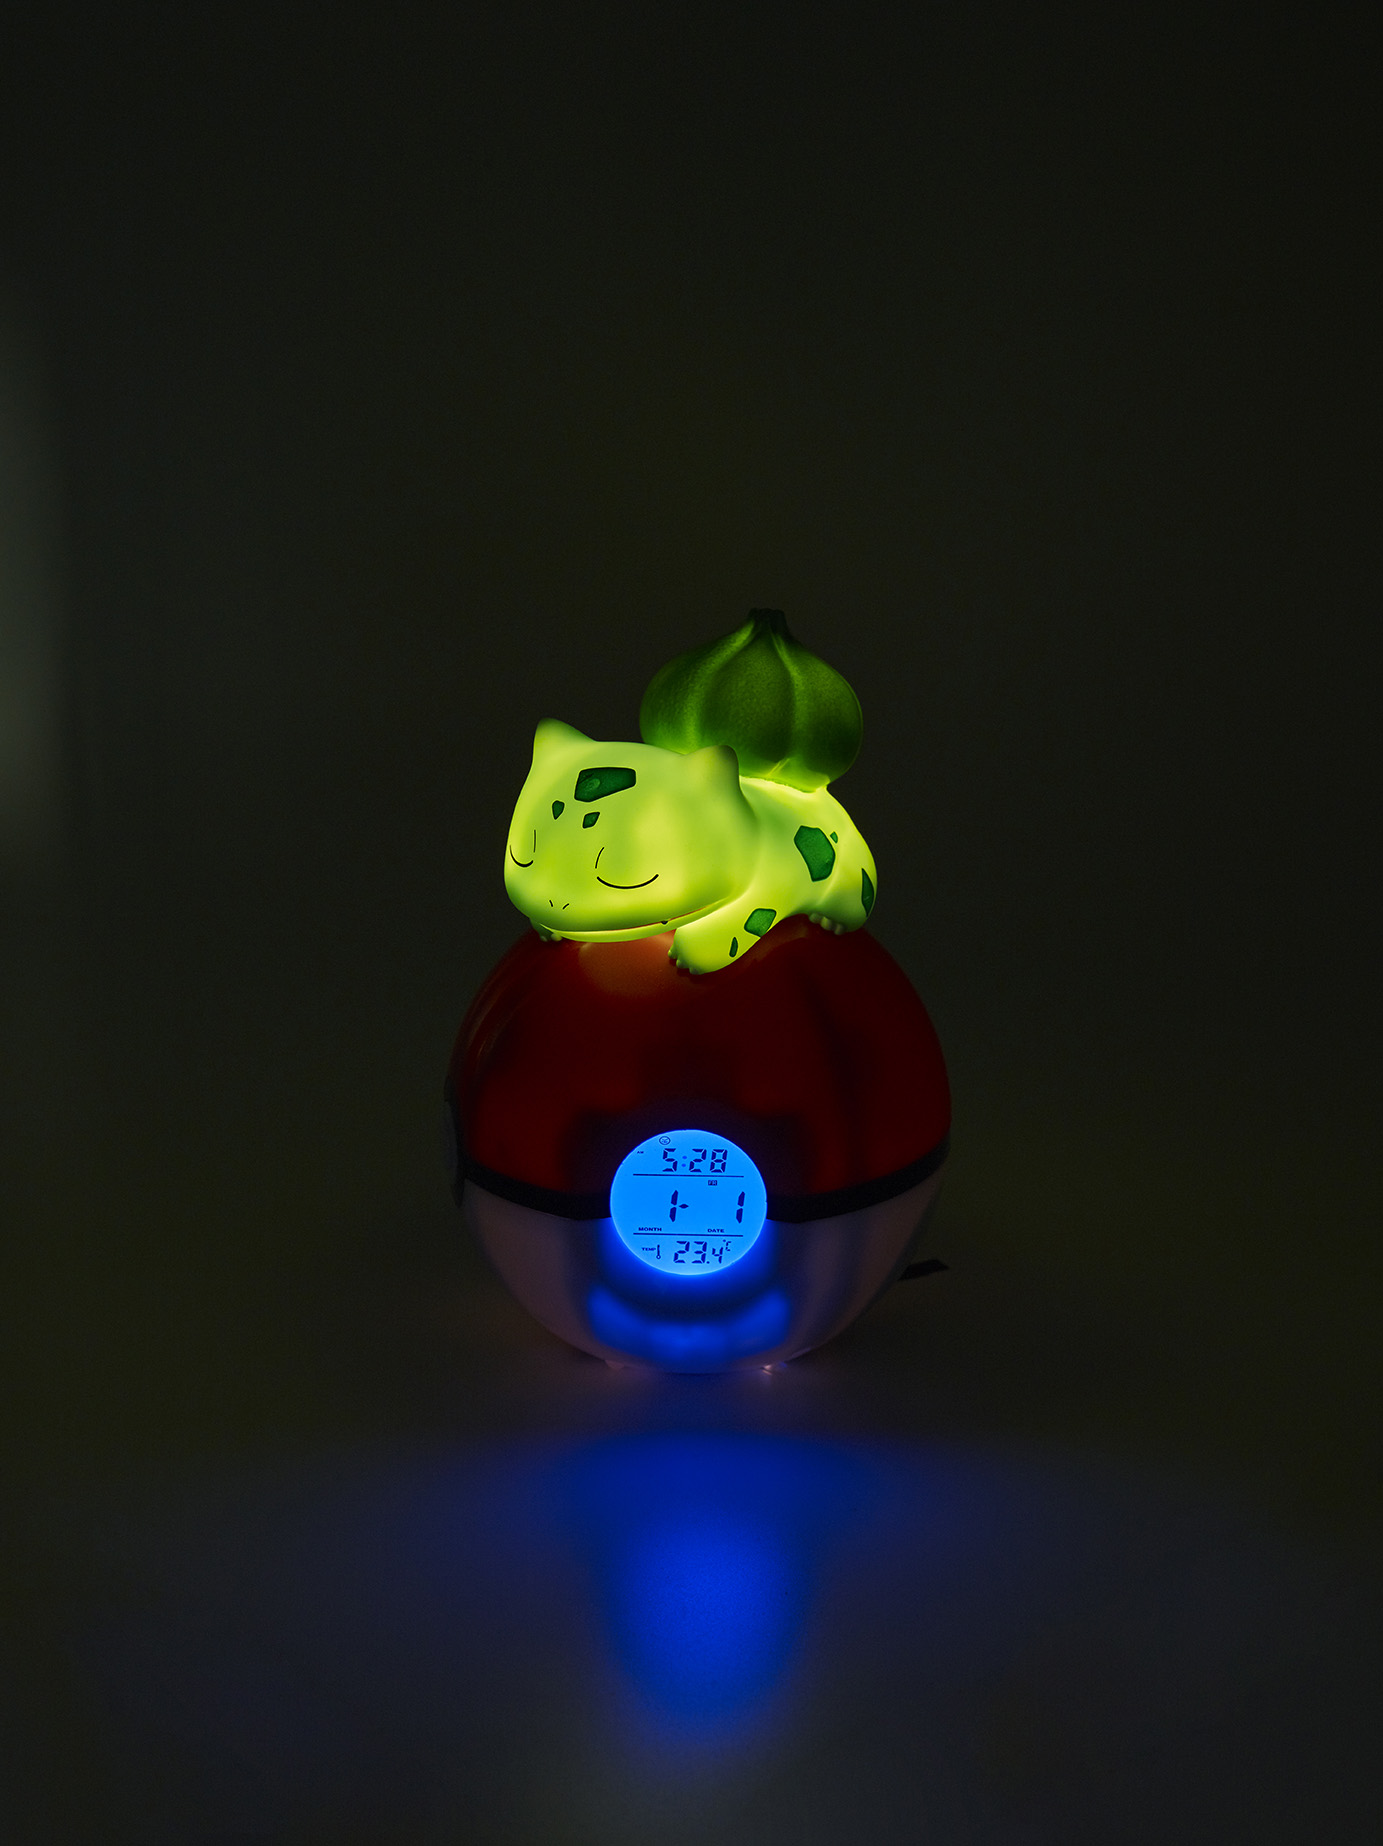 Pokémon Bulbasaur Light-up 3D figure FM Alarm Clock 4